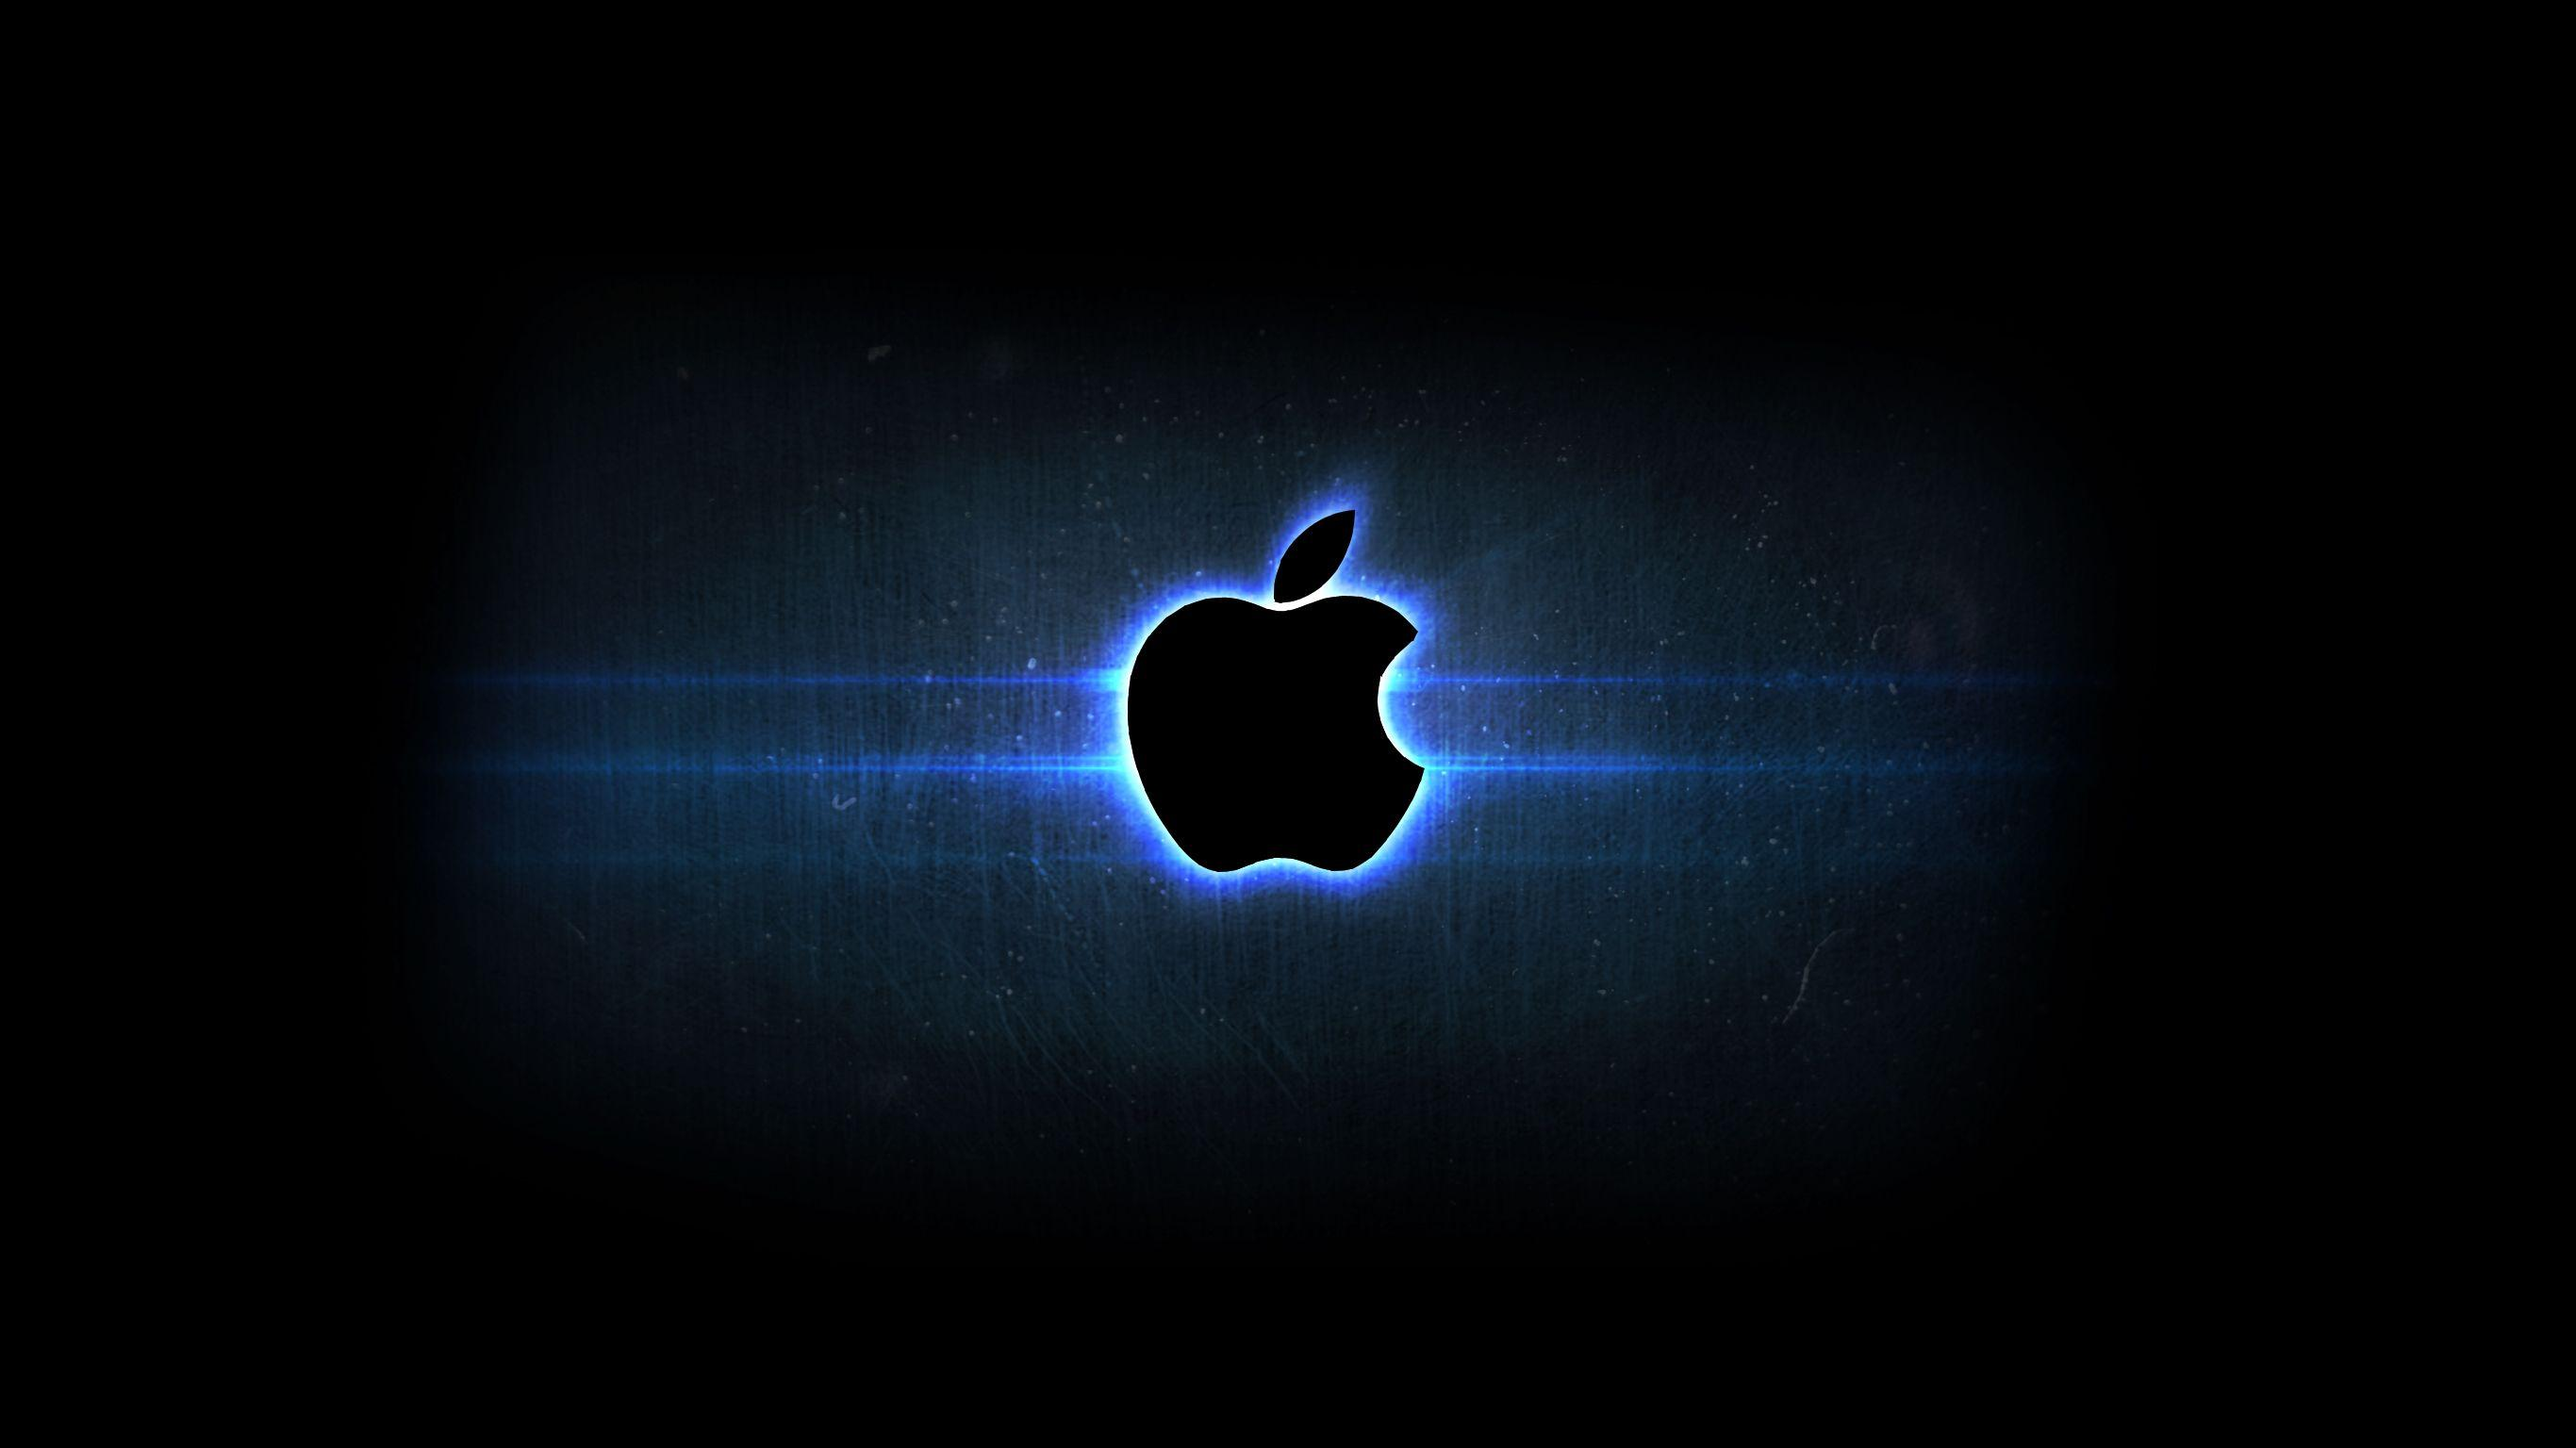 Apple Wallpapers For Mac, iPhone 5,6,7 and Desktop Screens